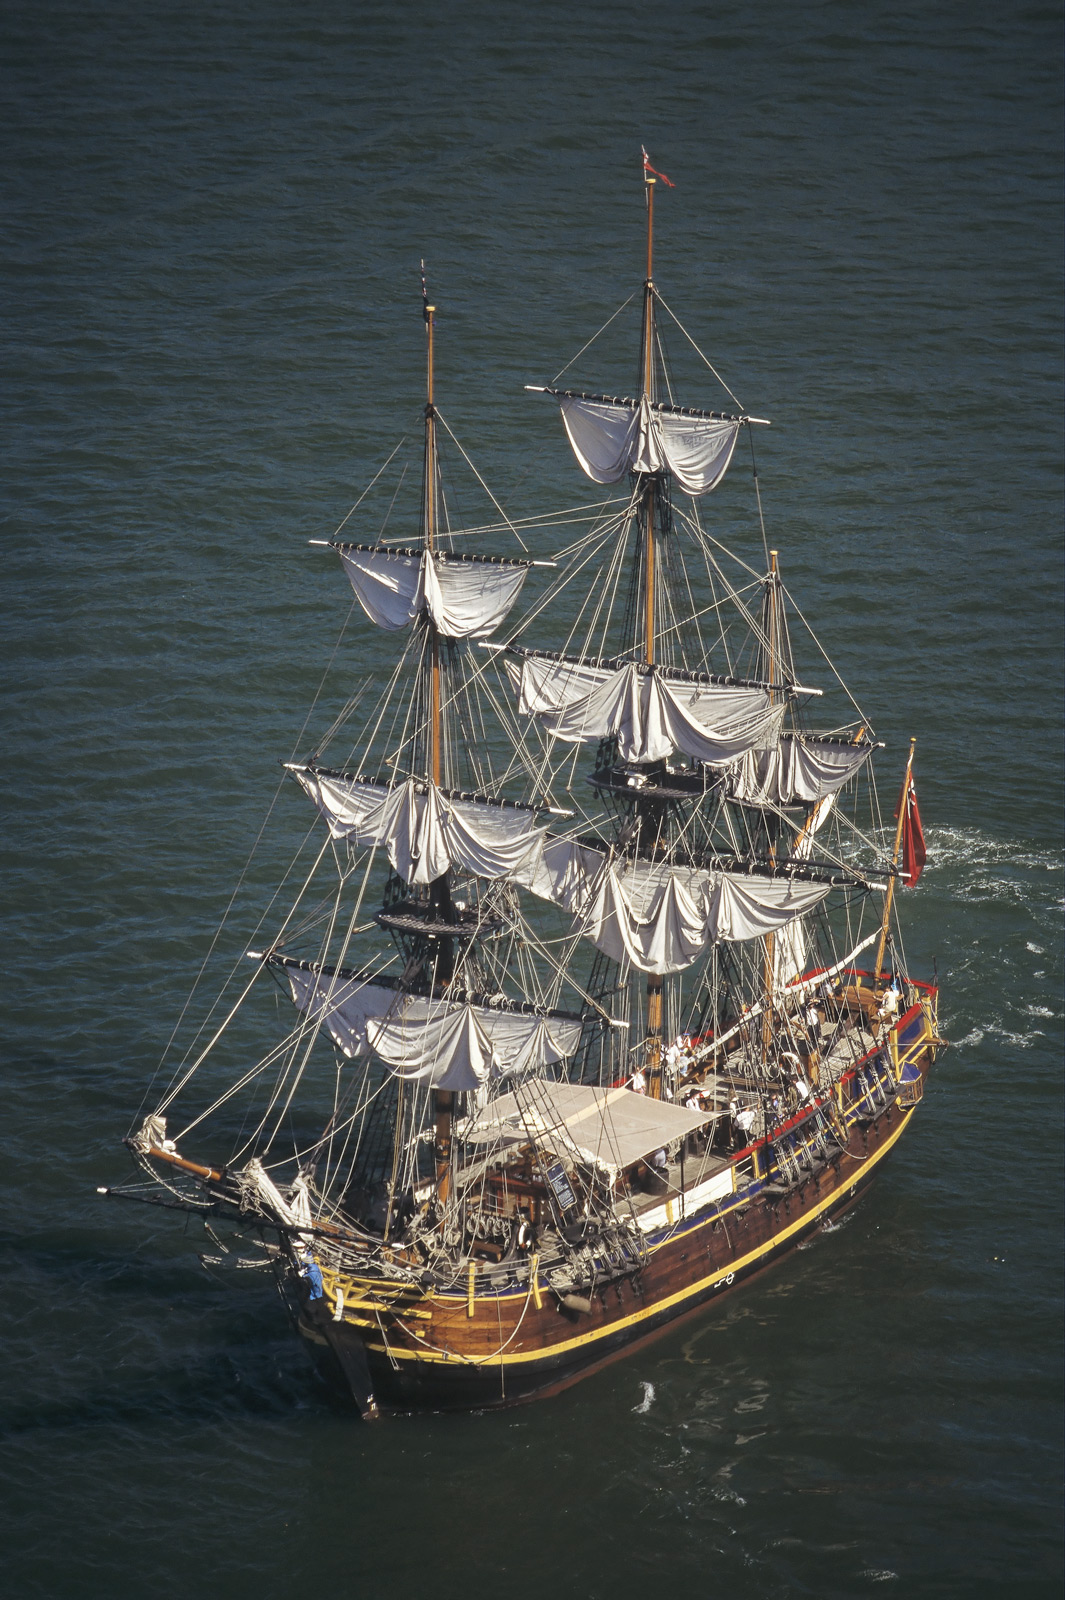 The Southern Swan tall ship is available for charter and from my viewpoint high up on Sydney Harbour bridge in conjunction with...